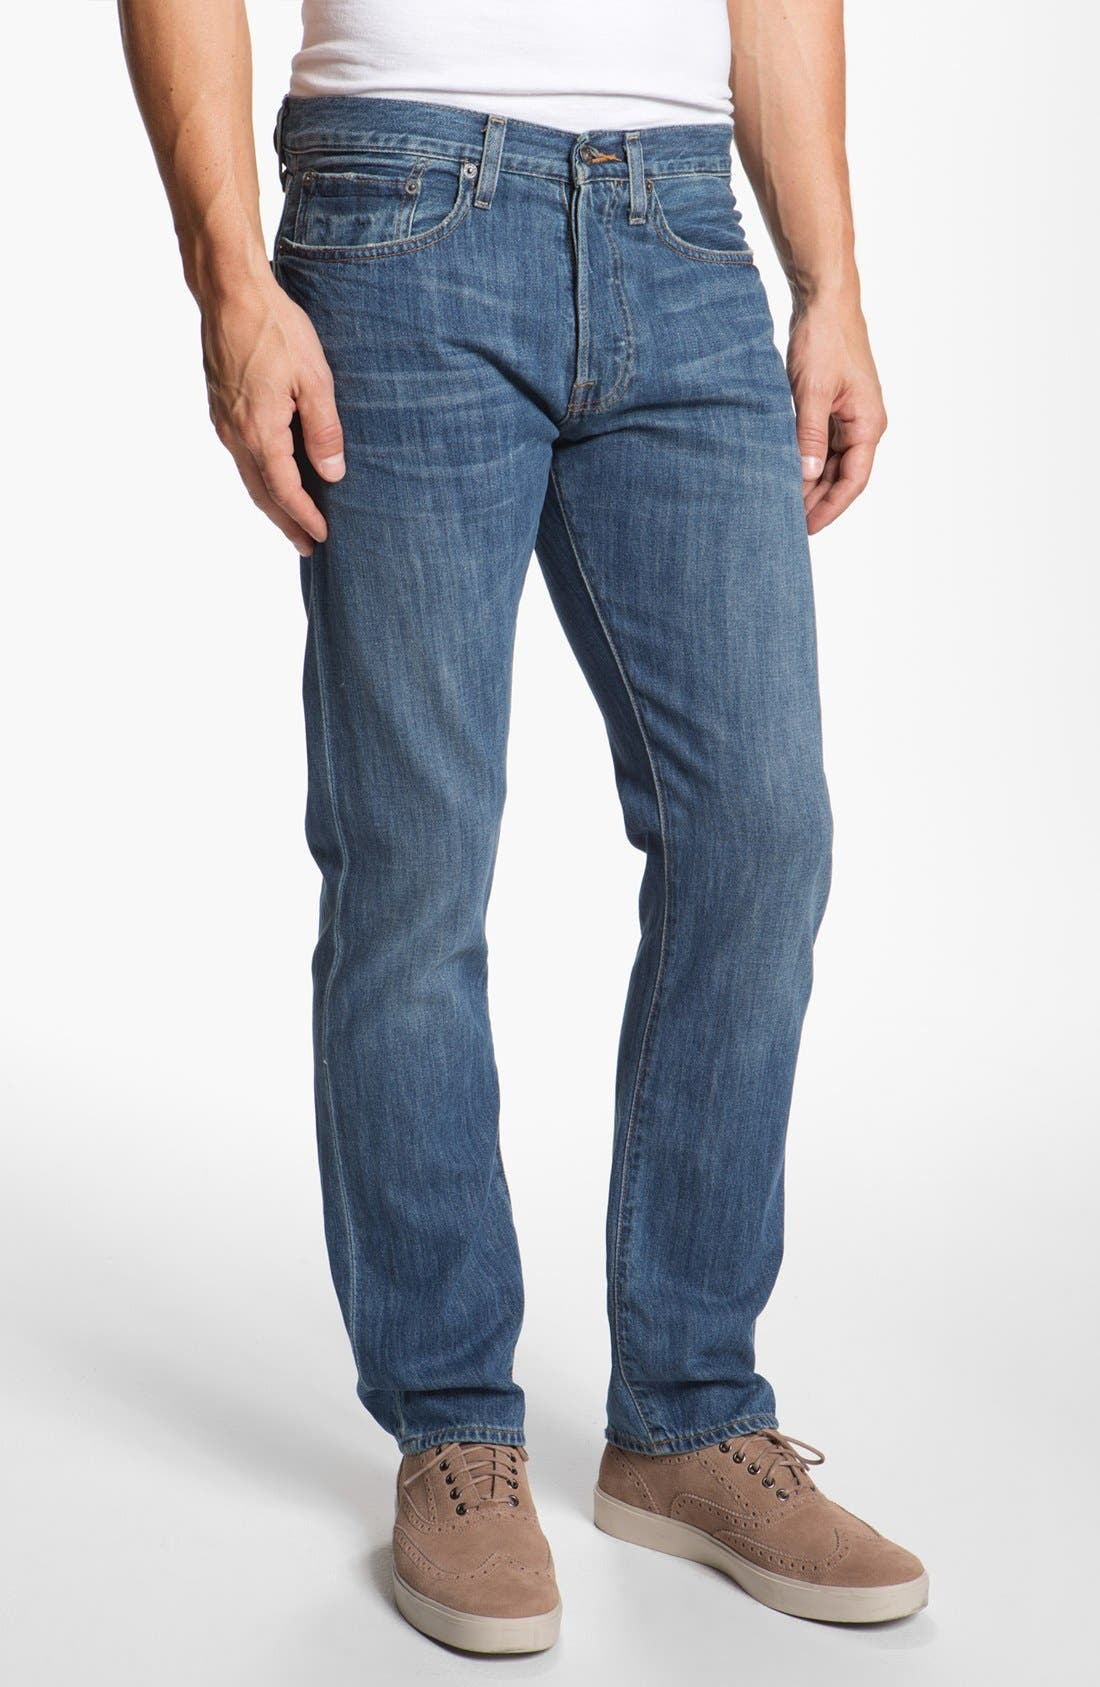 Alternate Image 1 Selected - Lucky Brand '121 Heritage' Slim Straight Leg Jeans (Conejo)